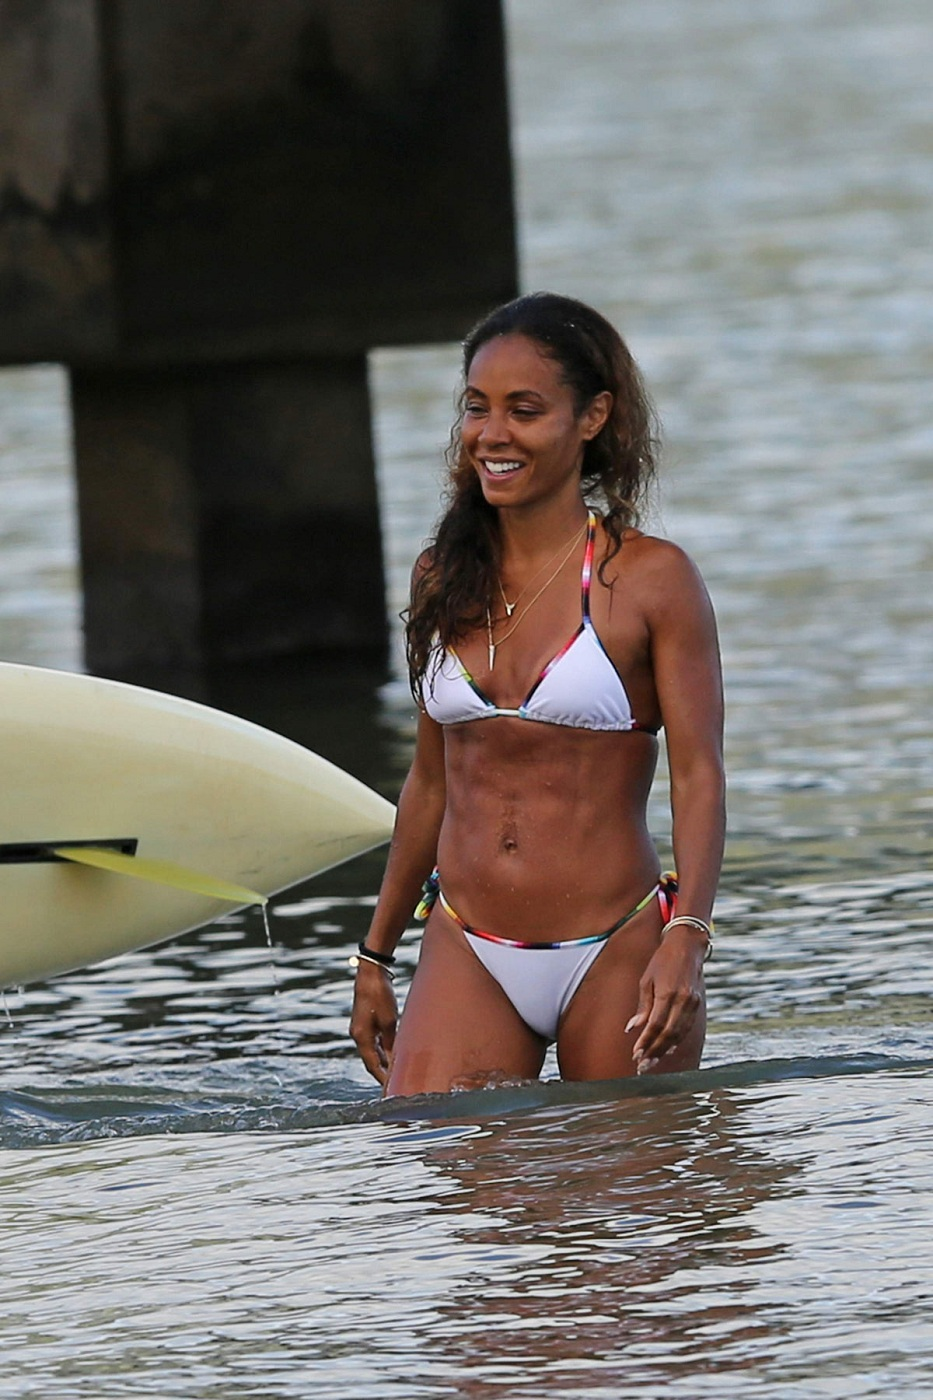 JADA-PINKETT-SMITH-in-Bikini-at-a-Beach-in-Hawaii-4.jpg - 332.51 KB